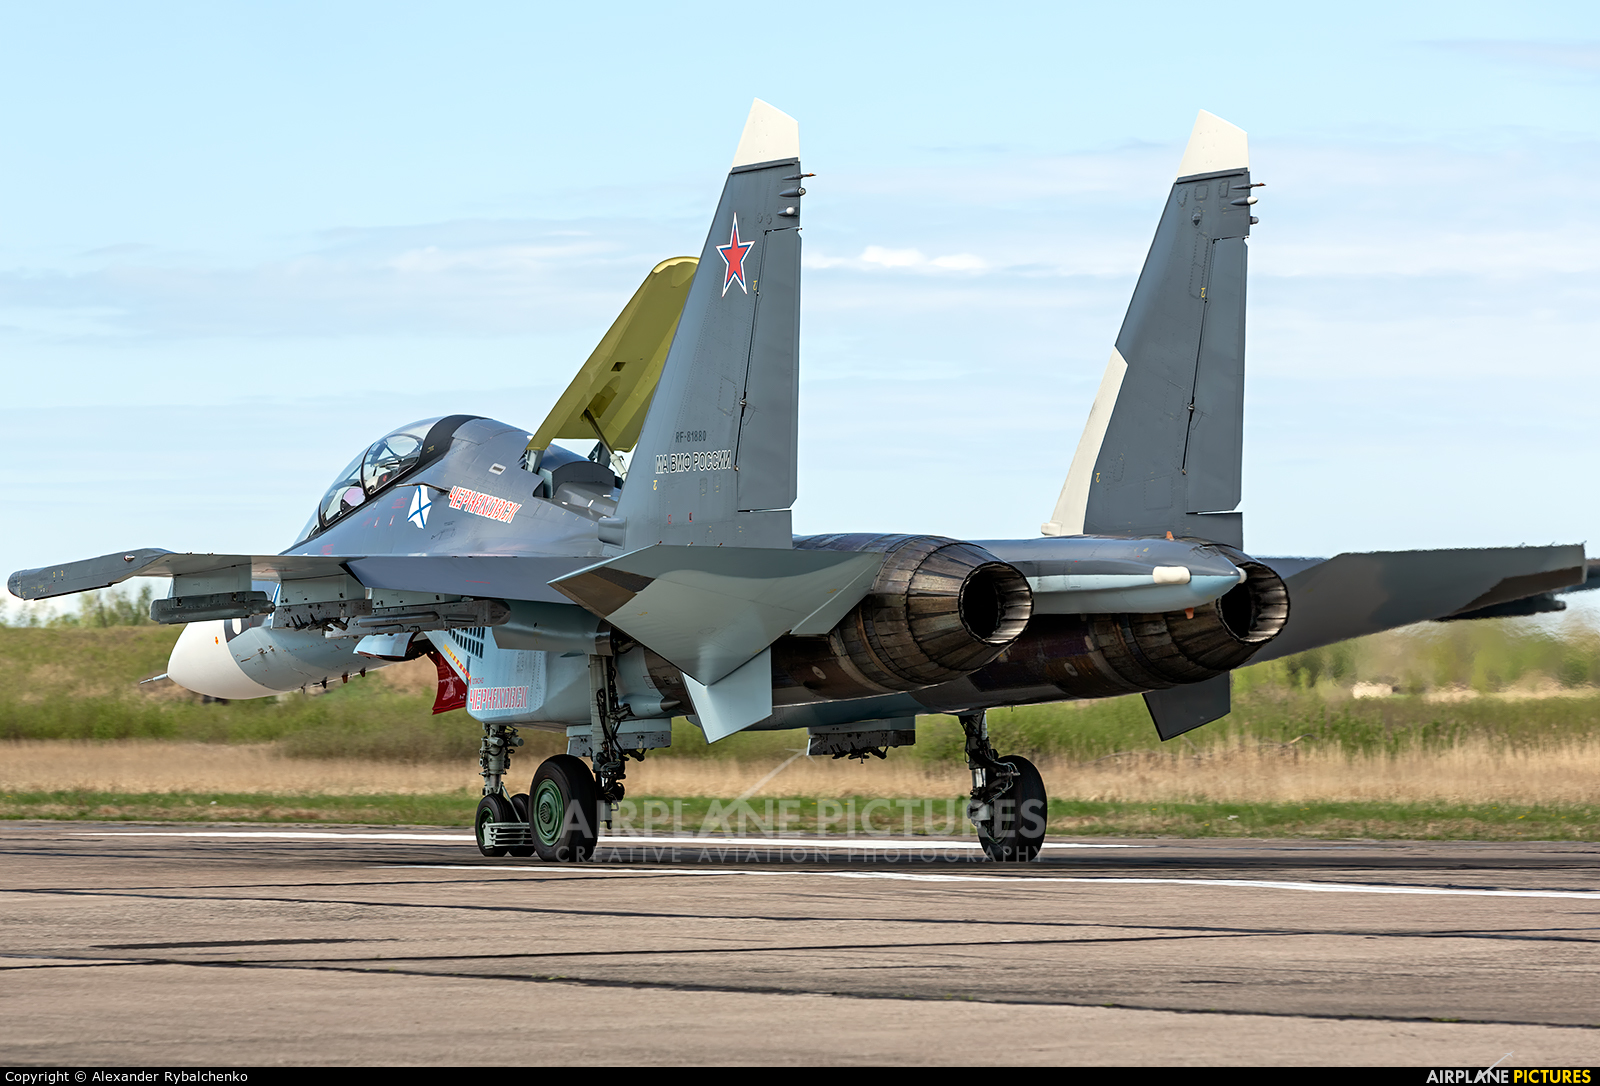 Russia - Navy RF-81880 aircraft at Undisclosed Location